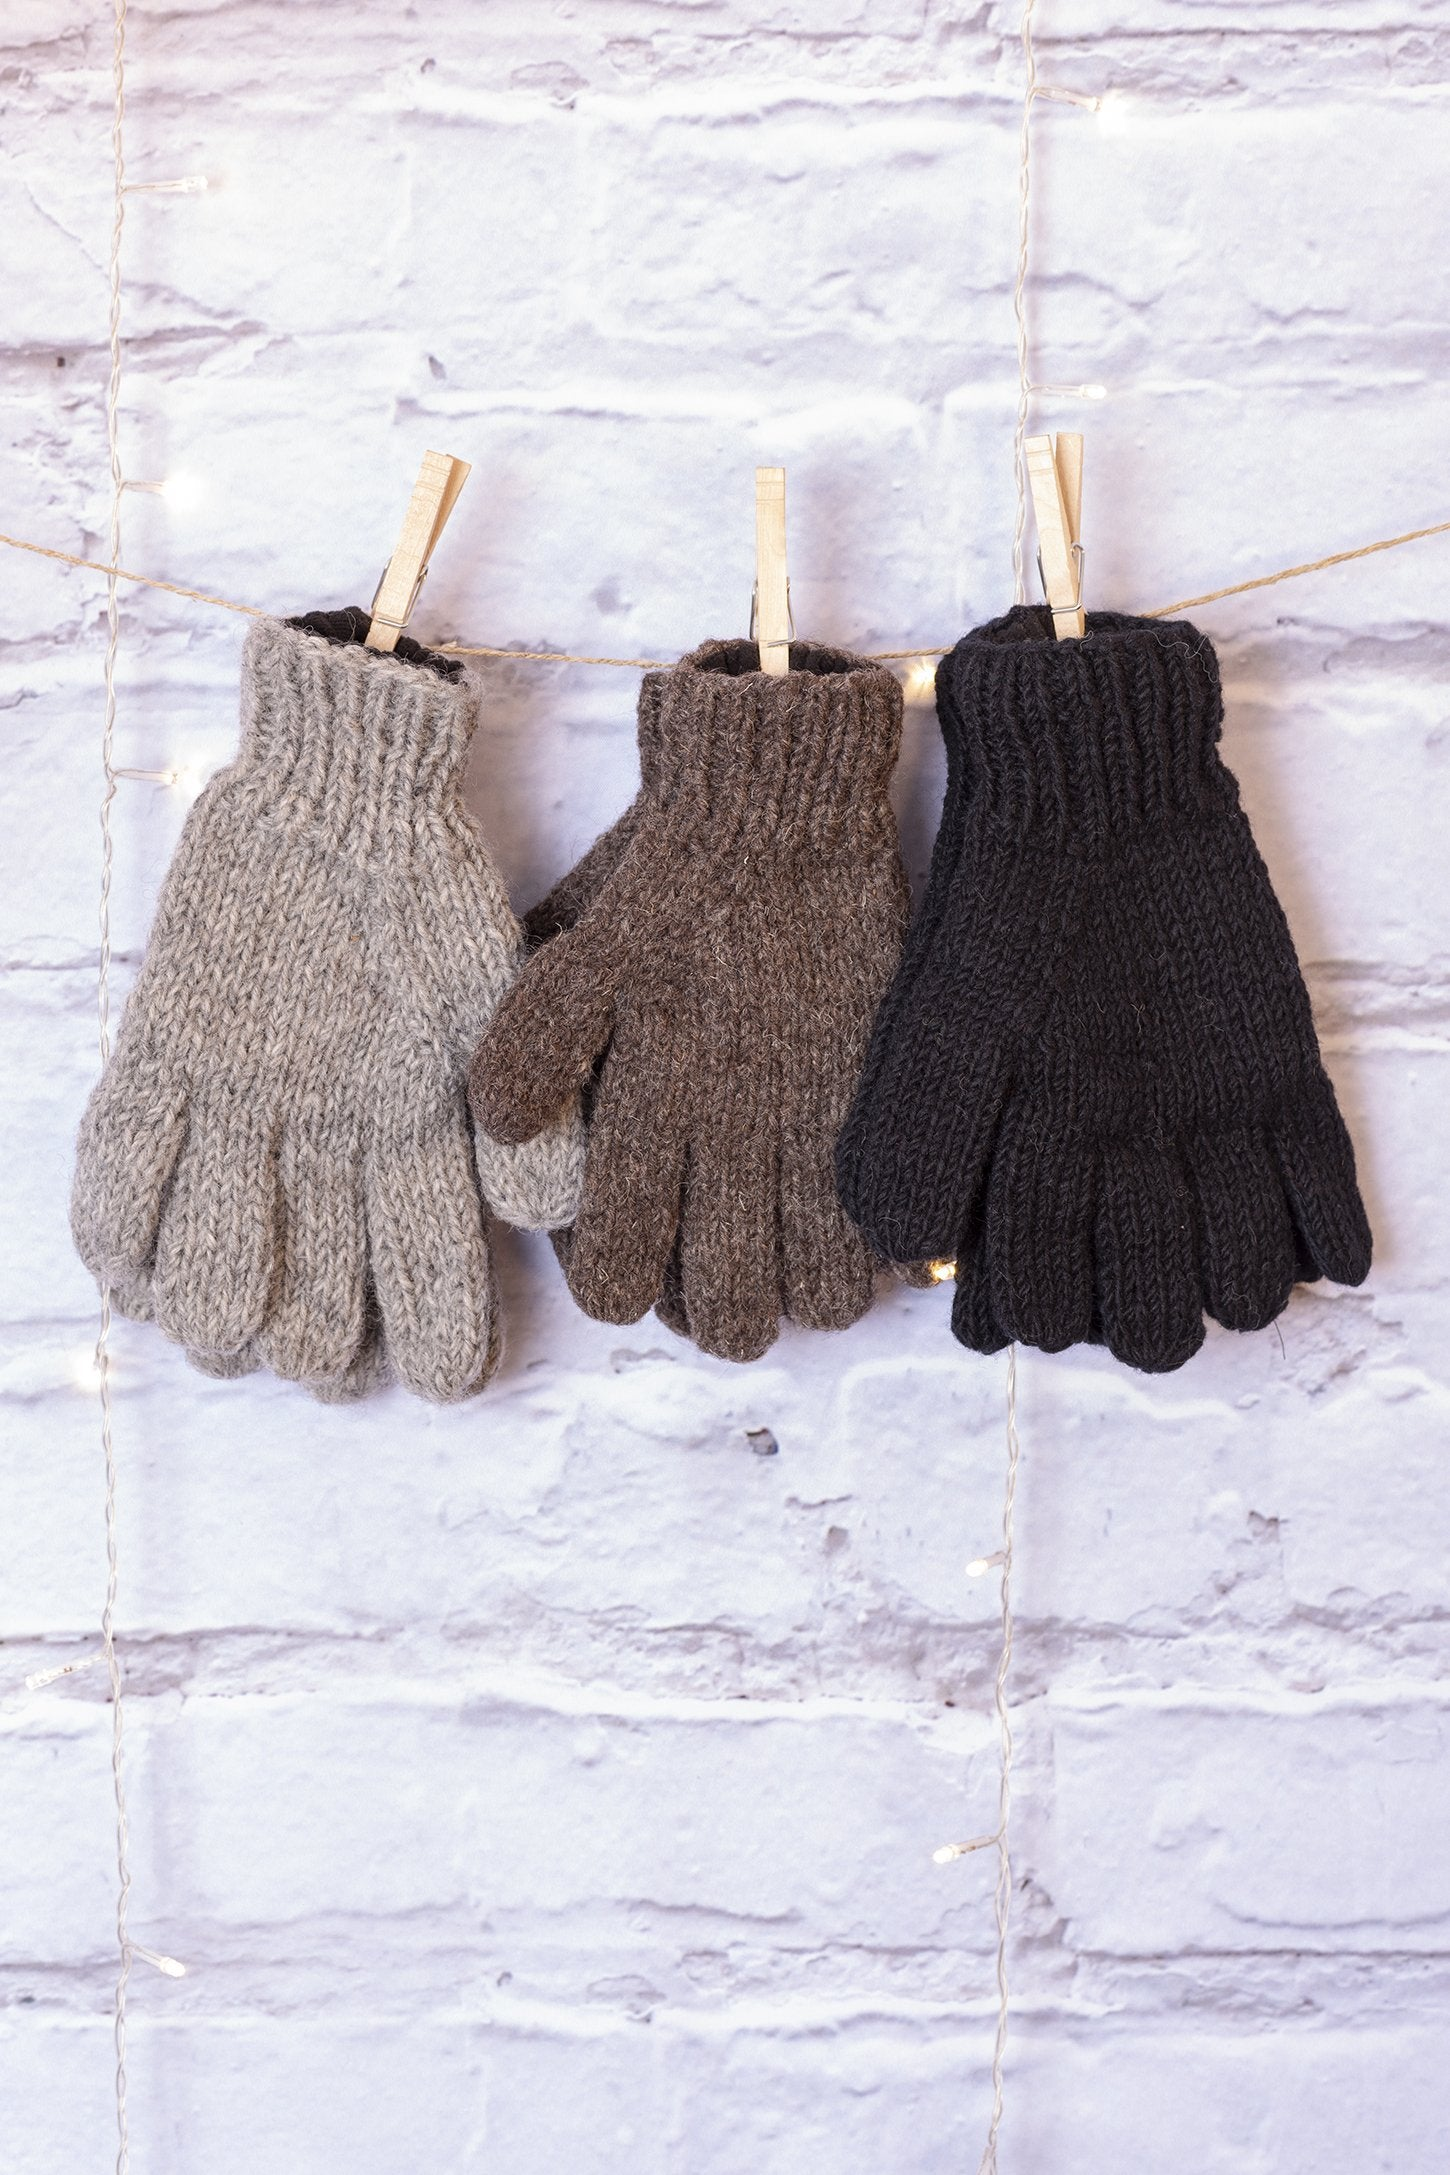 Vintage Gloves History- 1900, 1910, 1920, 1930 1940, 1950, 1960 Solid Colored Fleece Lined Wool Gloves $12.60 AT vintagedancer.com